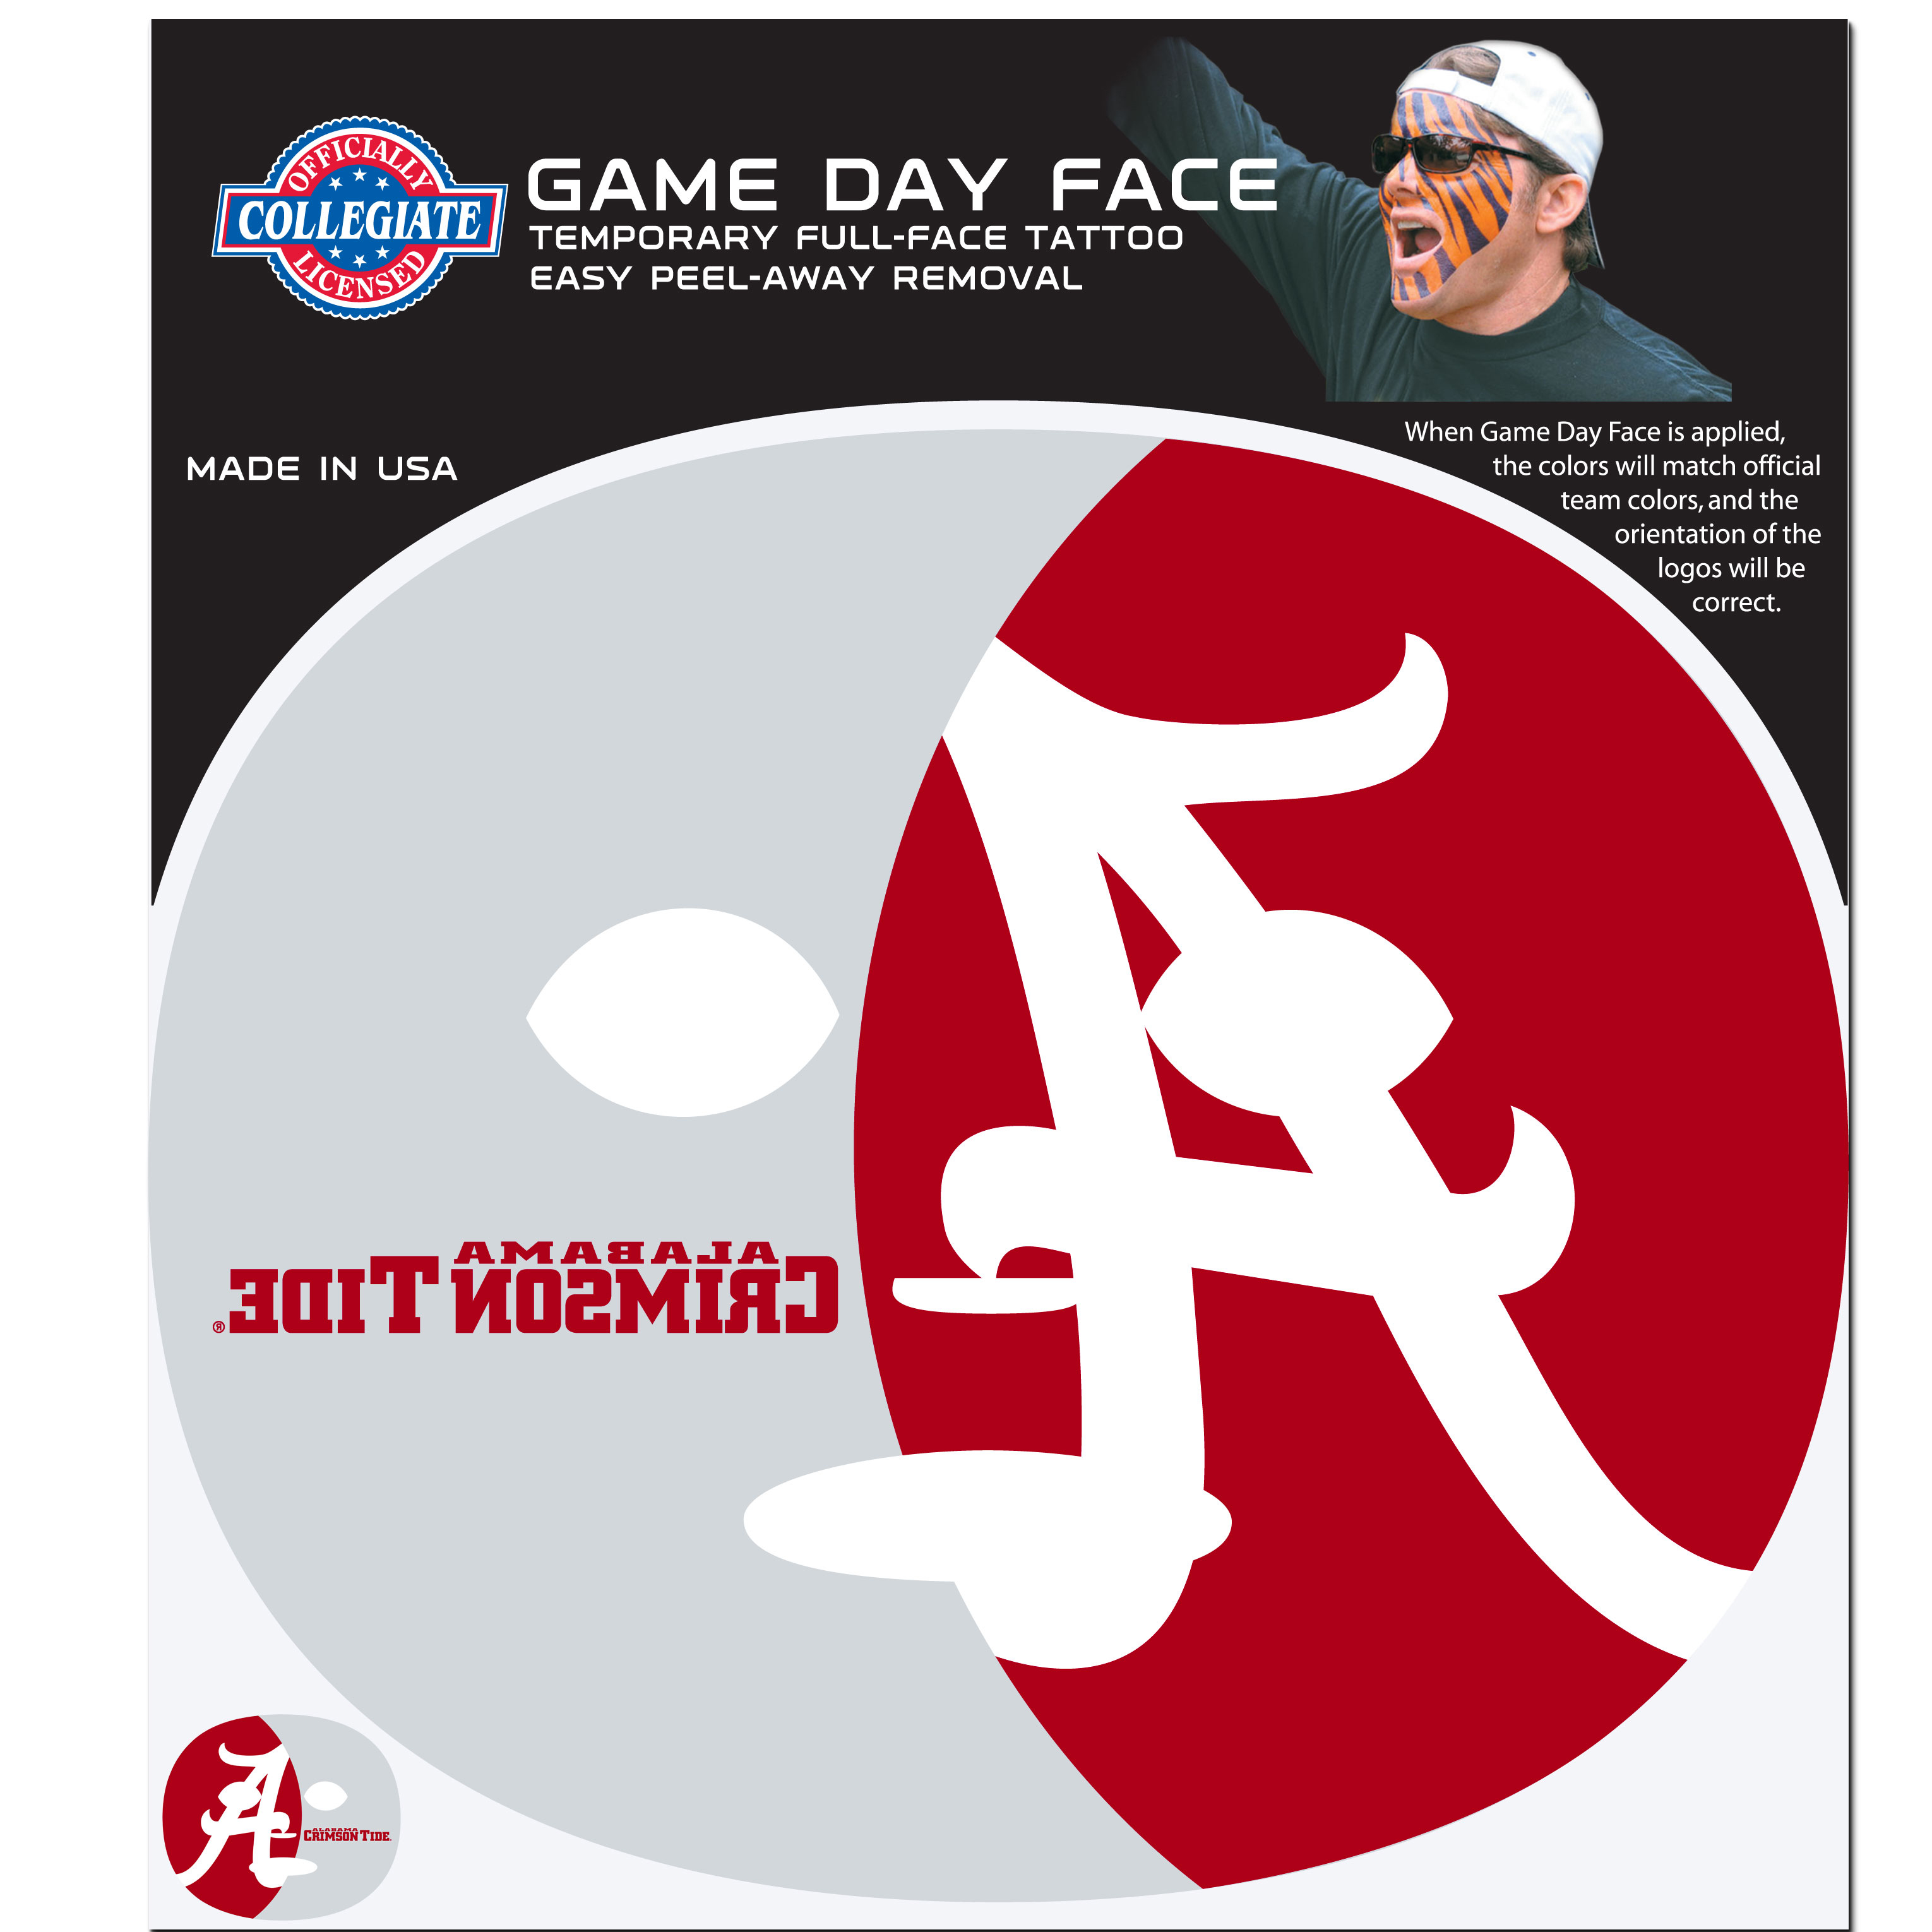 Alabama Crimson Tide Set of 4 Game Day Faces - No better way to show your team pride than by painting your face. Siskiyou's Game Day Face Temporary Tattoo isn't your typical face paint. It is a water based application that doesn't smudge, smear or sweat off while you're wearing it and easily peels off after you're done celebrating your team's big Win! The temporary tattoo is large enough to trim down to fit your face. Our Game Day Face Temporary Tattoo's are fun for fans of all ages. You may have seen our product before, these are the same Temporary Face Tattoos as pitched on ABC's Shark Tank.